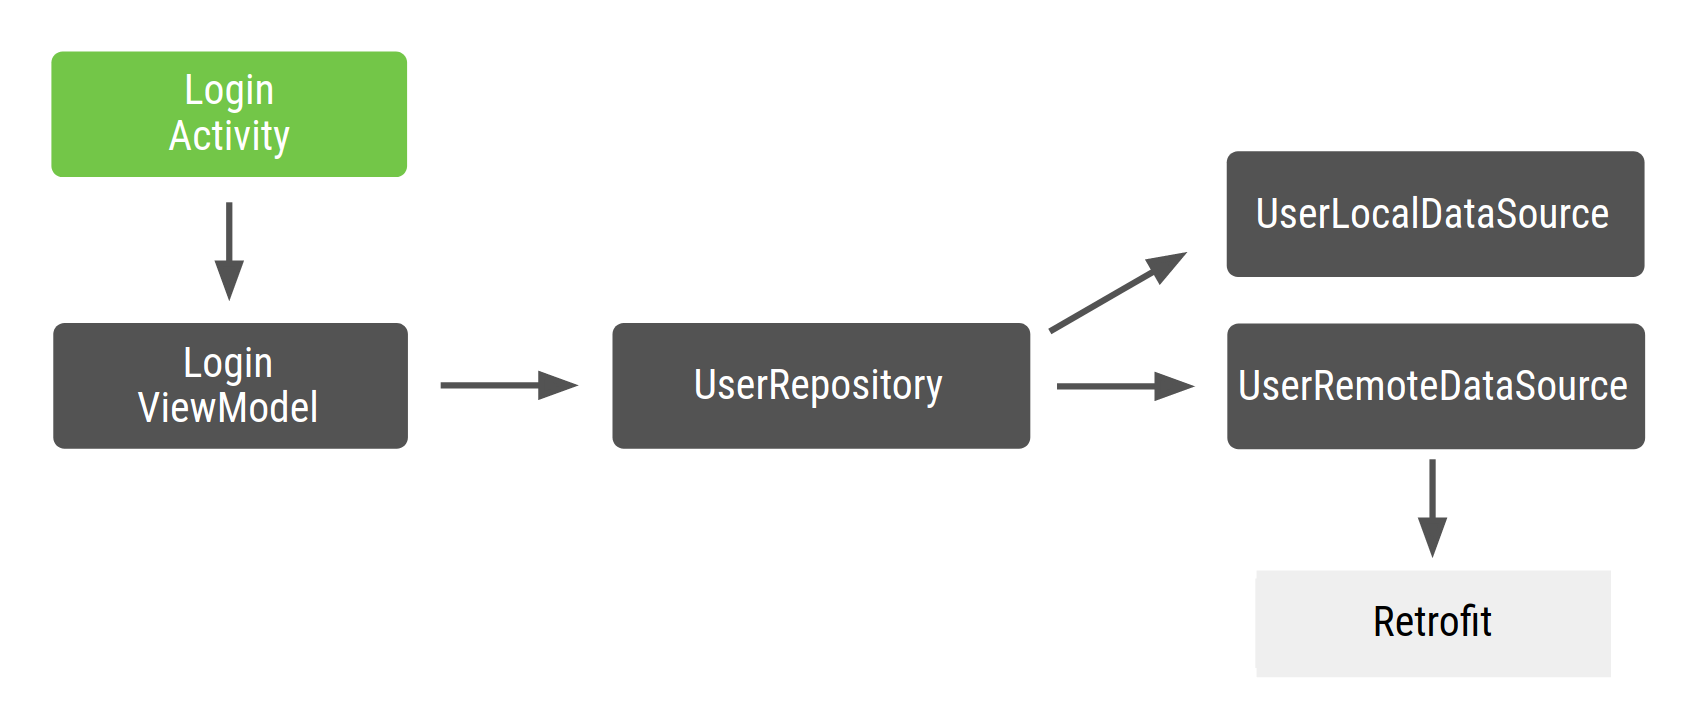 LoginActivity depends on LoginViewModel, which depends on UserRepository,   which depends on UserLocalDataSource and UserRemoteDataSource, which in turn   depends on Retrofit.